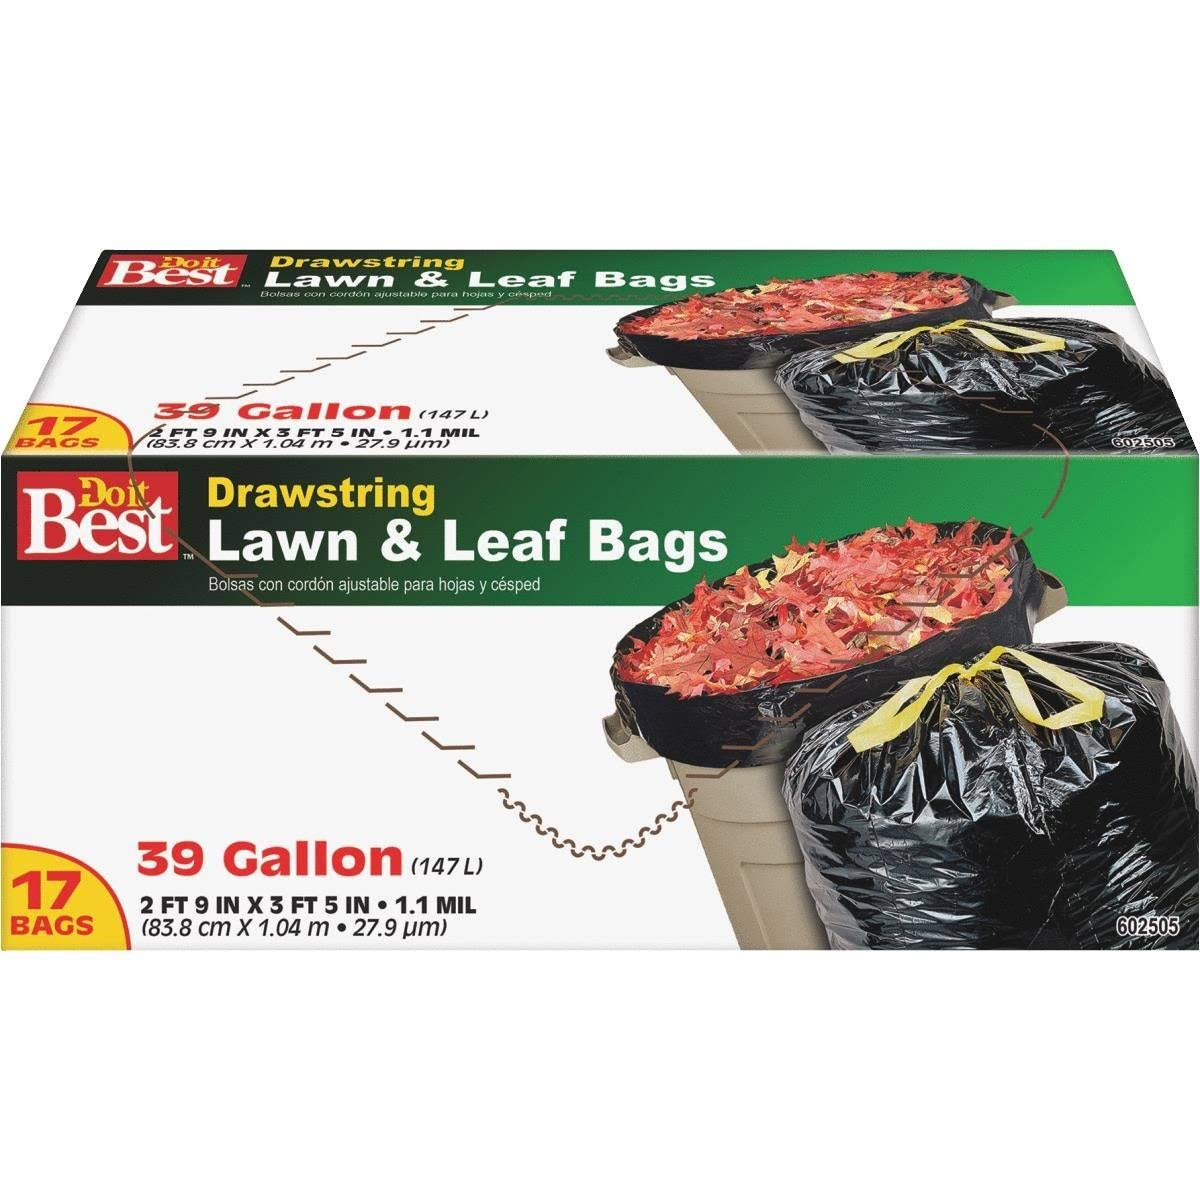 Do It Best Drawstring Lawn & Leaf Bag - 17 Bags